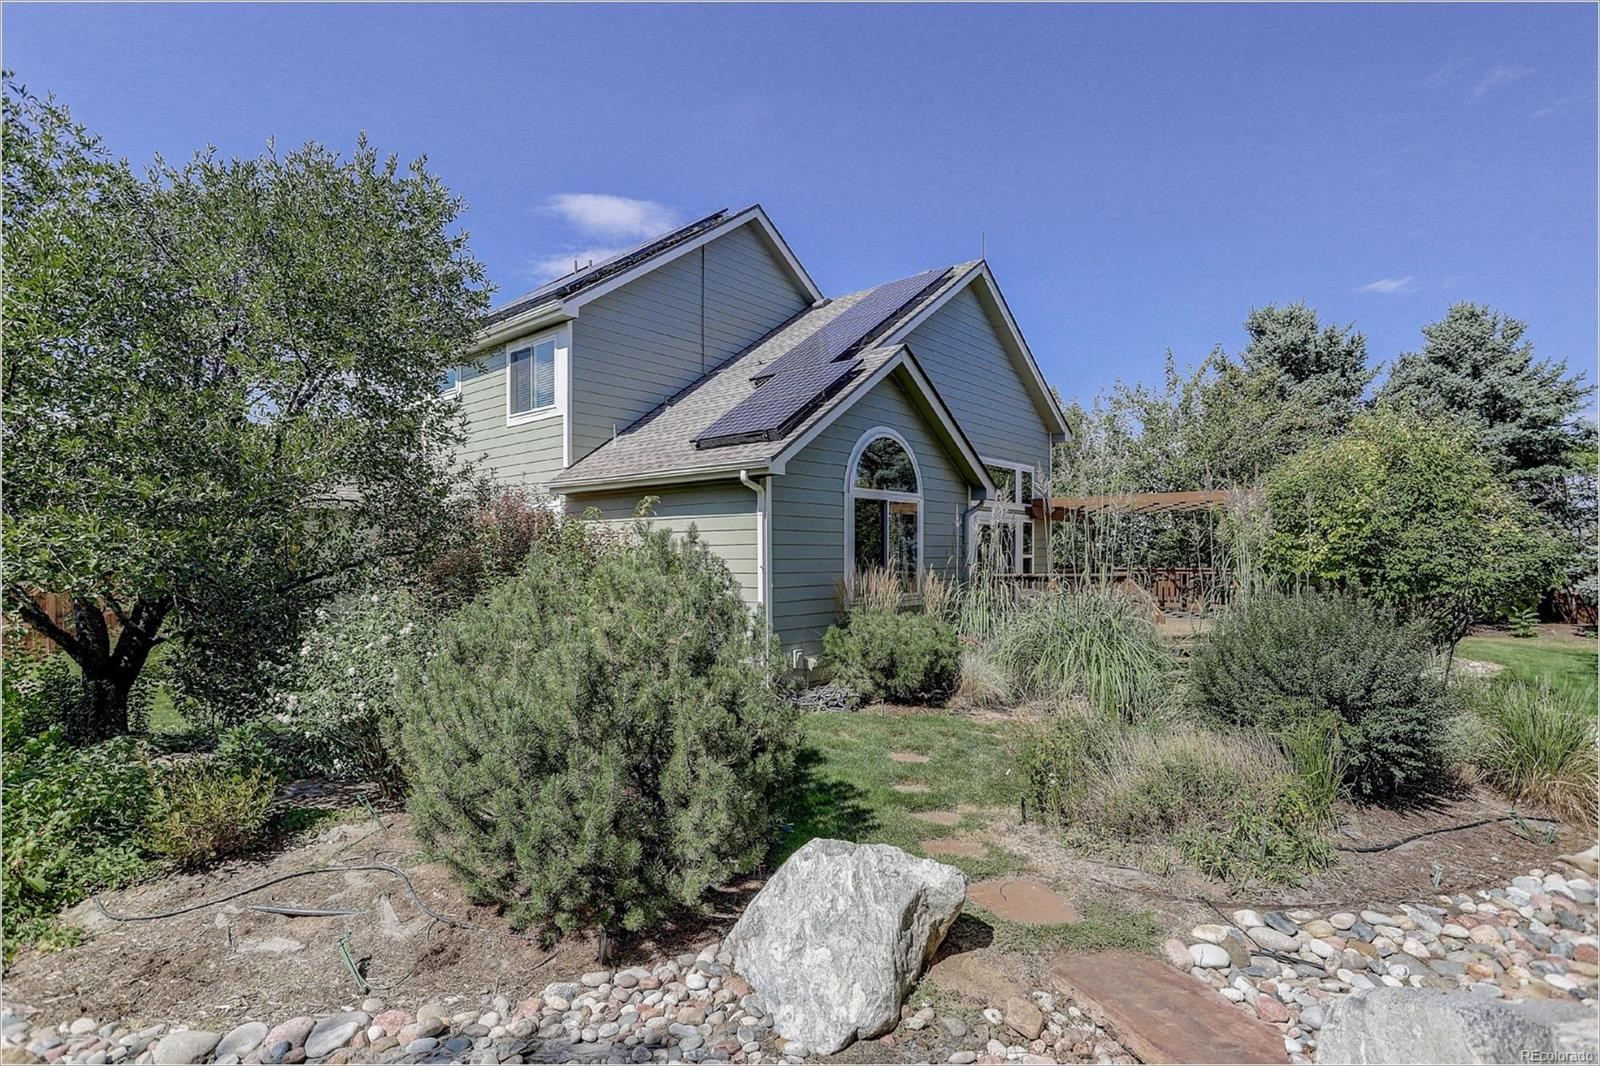 MLS# 8327774 - 1 - 806 W 127th Court, Westminster, CO 80234